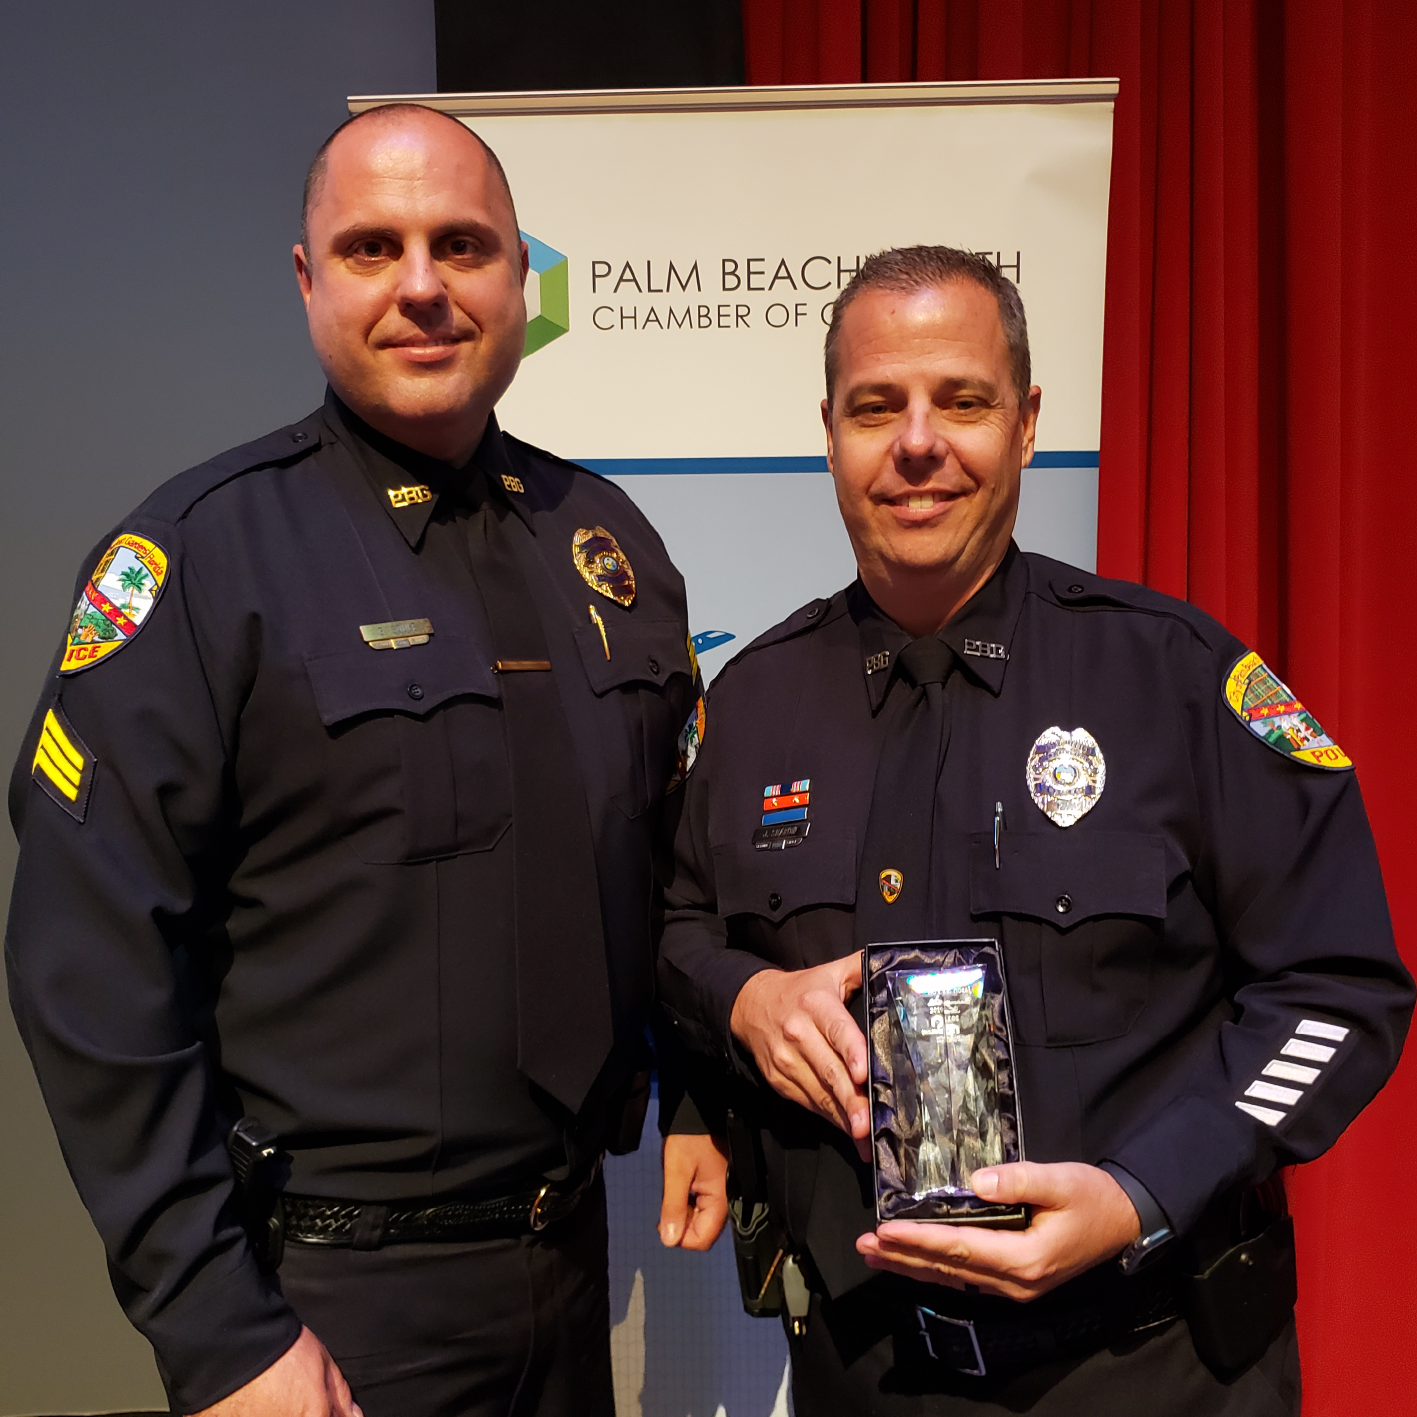 2019 Community Service Award Recipient